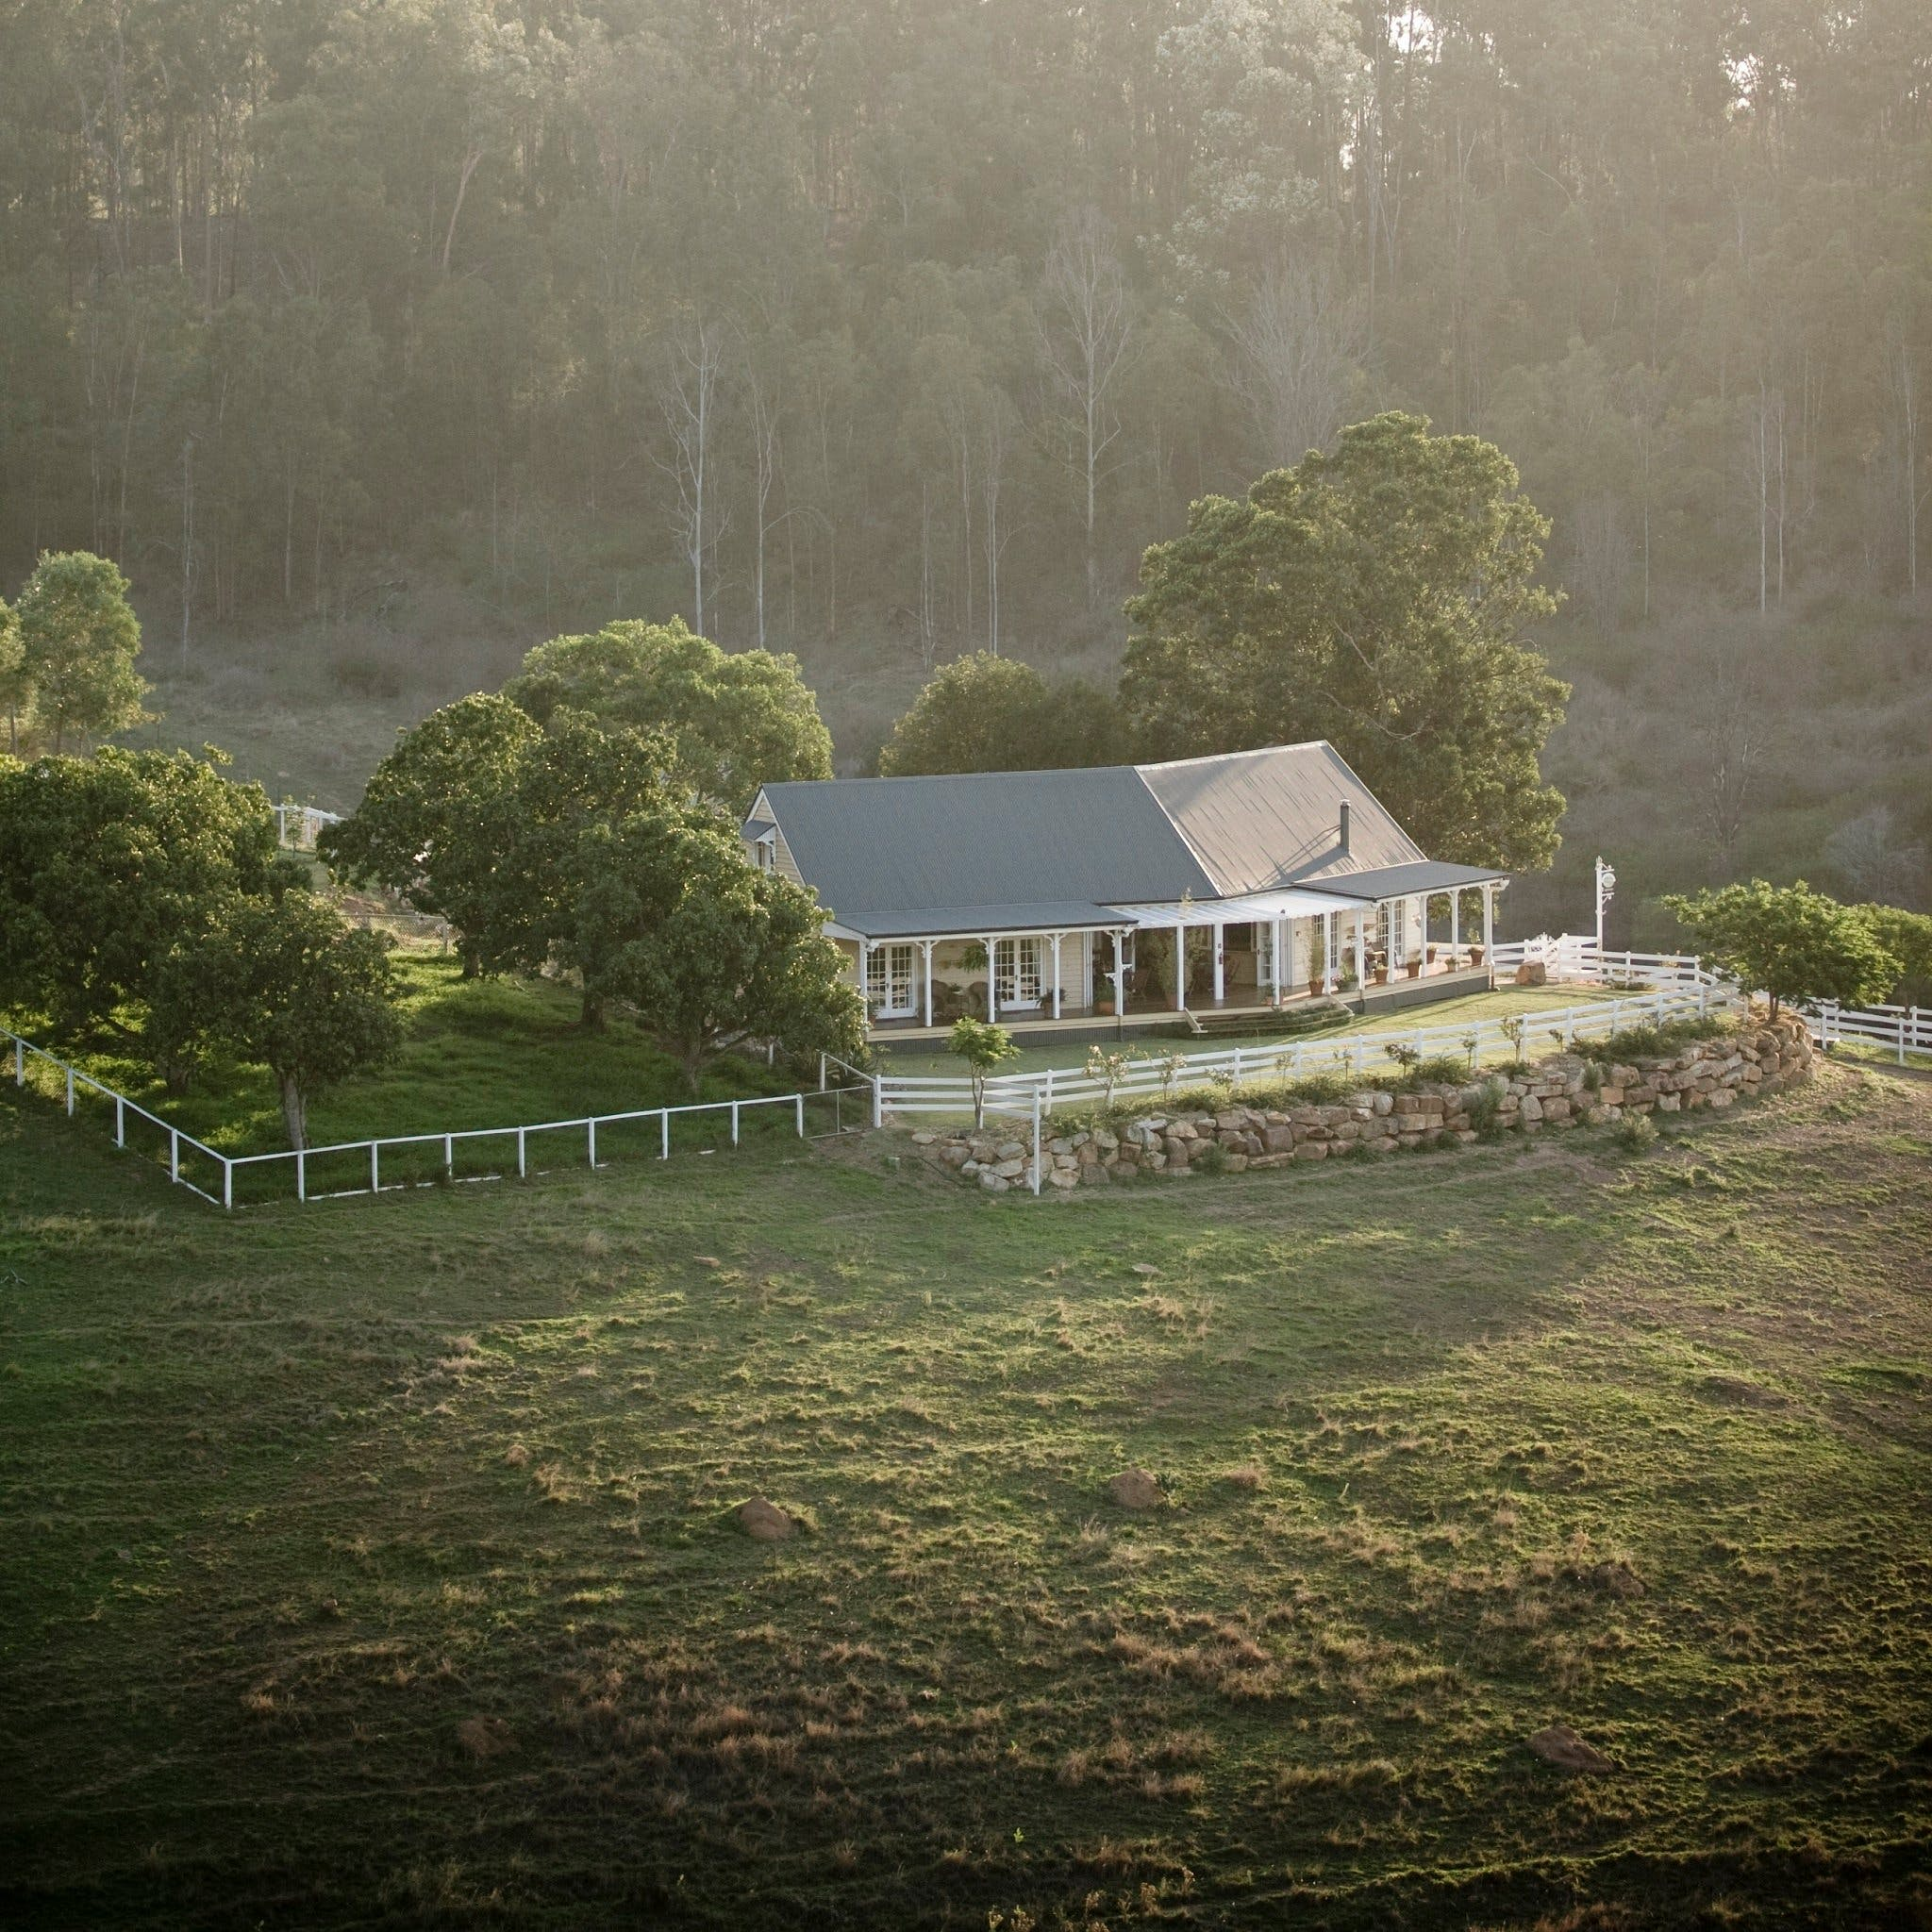 Branell Homestead Bed and Breakfast - WA Accommodation